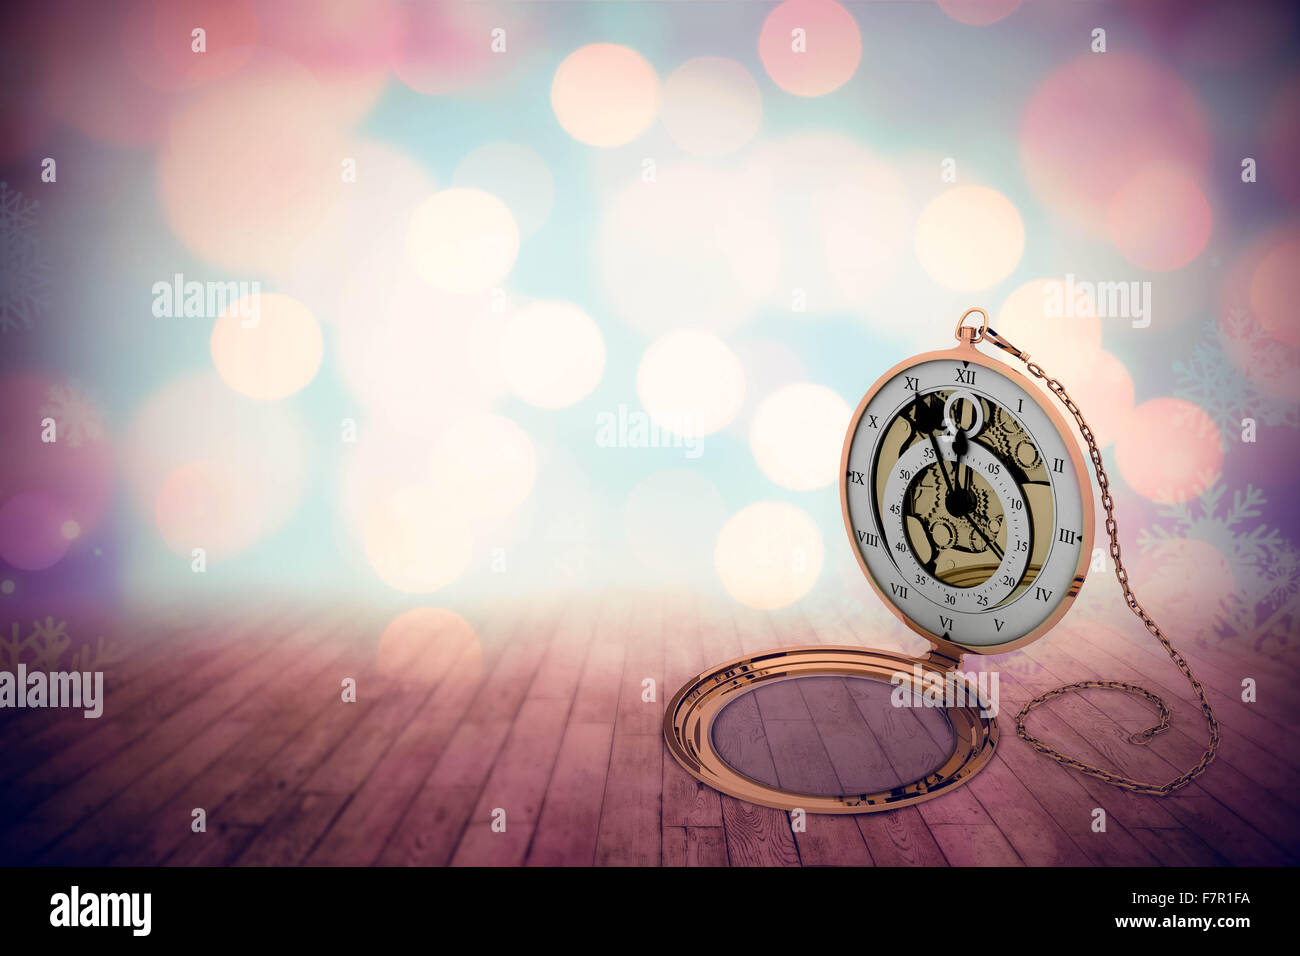 Composite image of retro styled pocket clock with chain - Stock Image